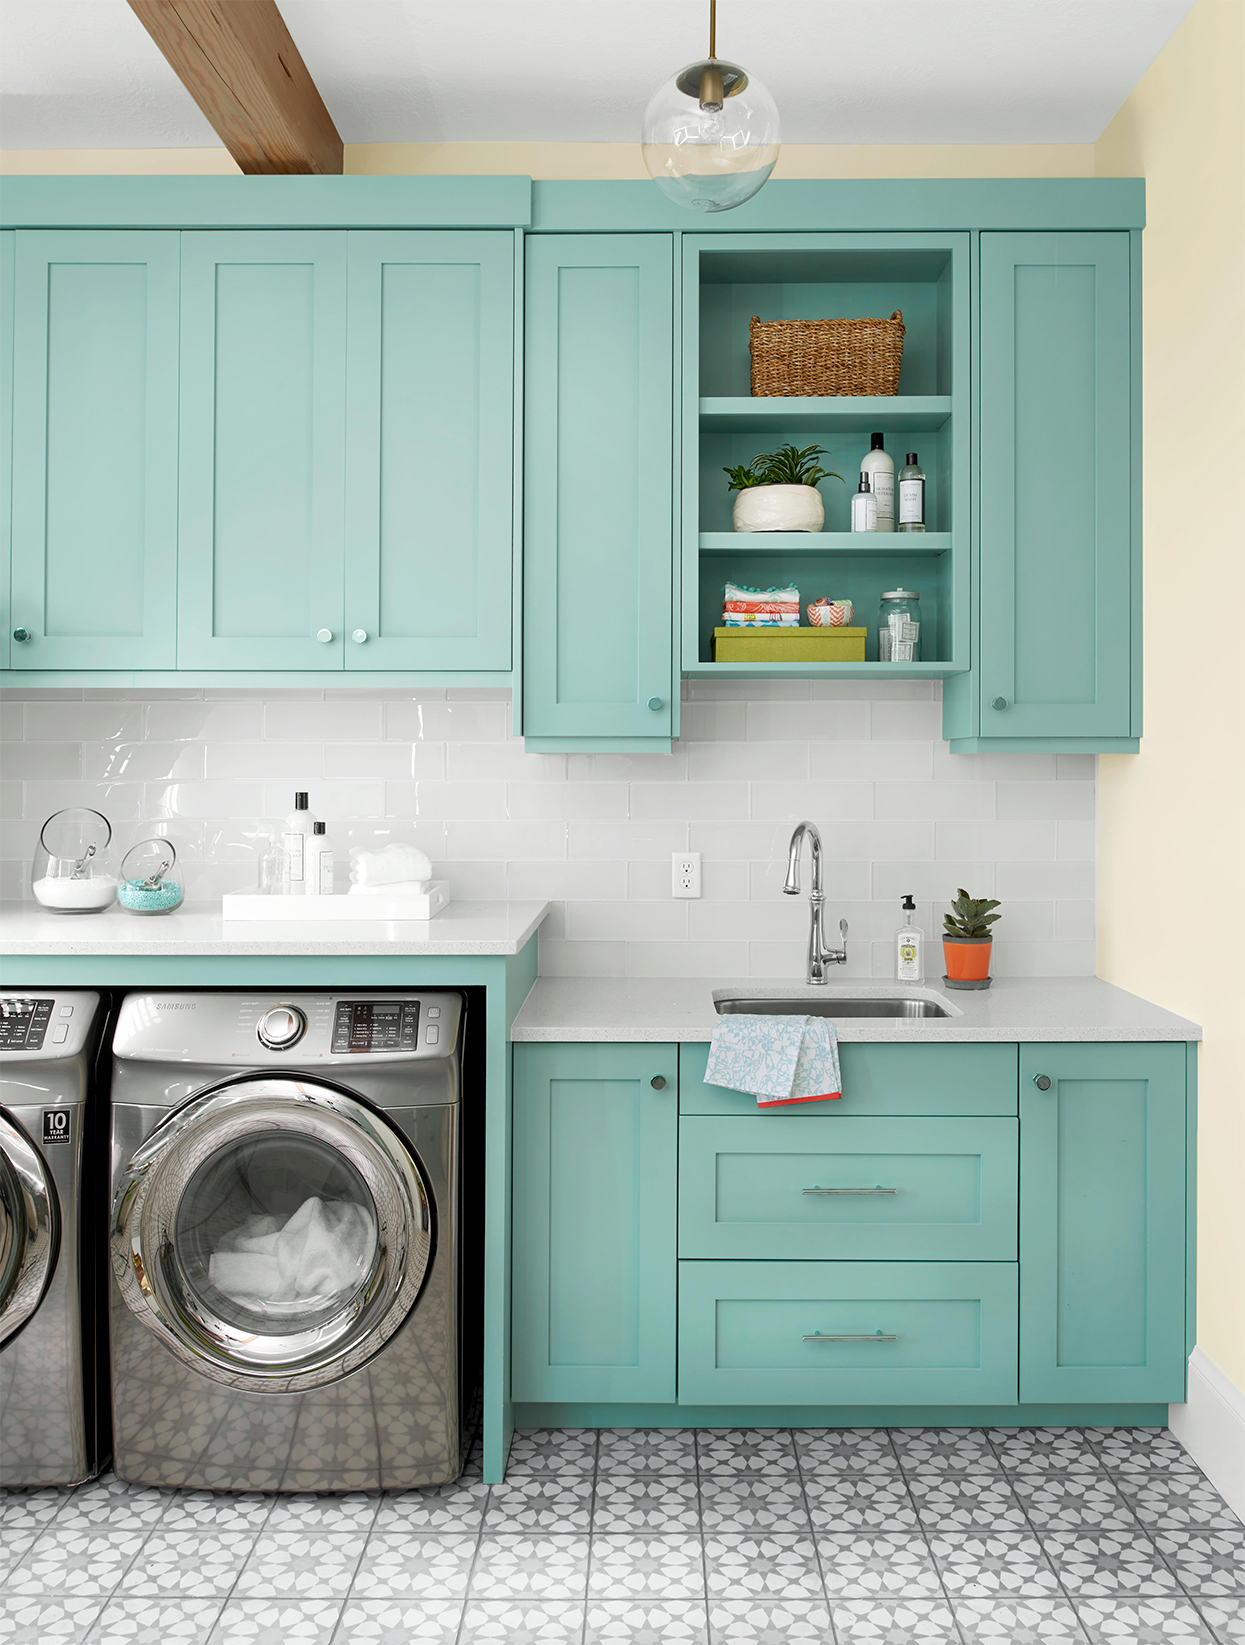 laundry room with modern tile and mint-green shaker cabinets